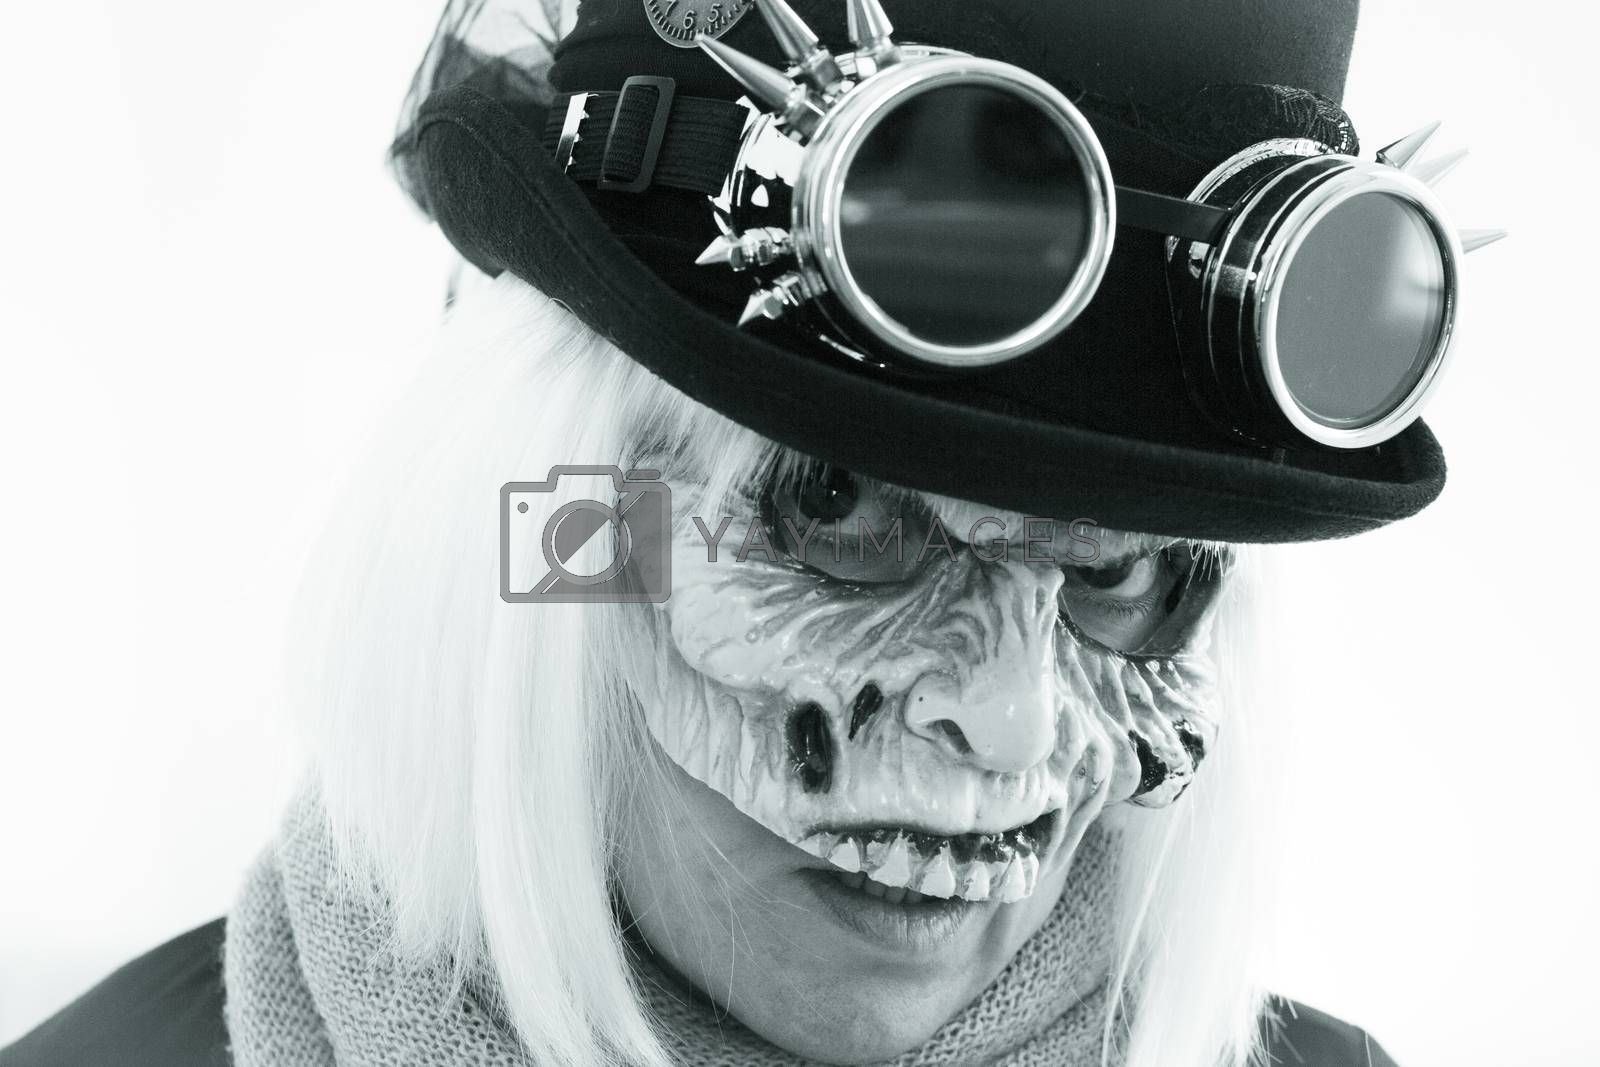 Woman with monster face and black hat wearing steampunk glasses. White hair.